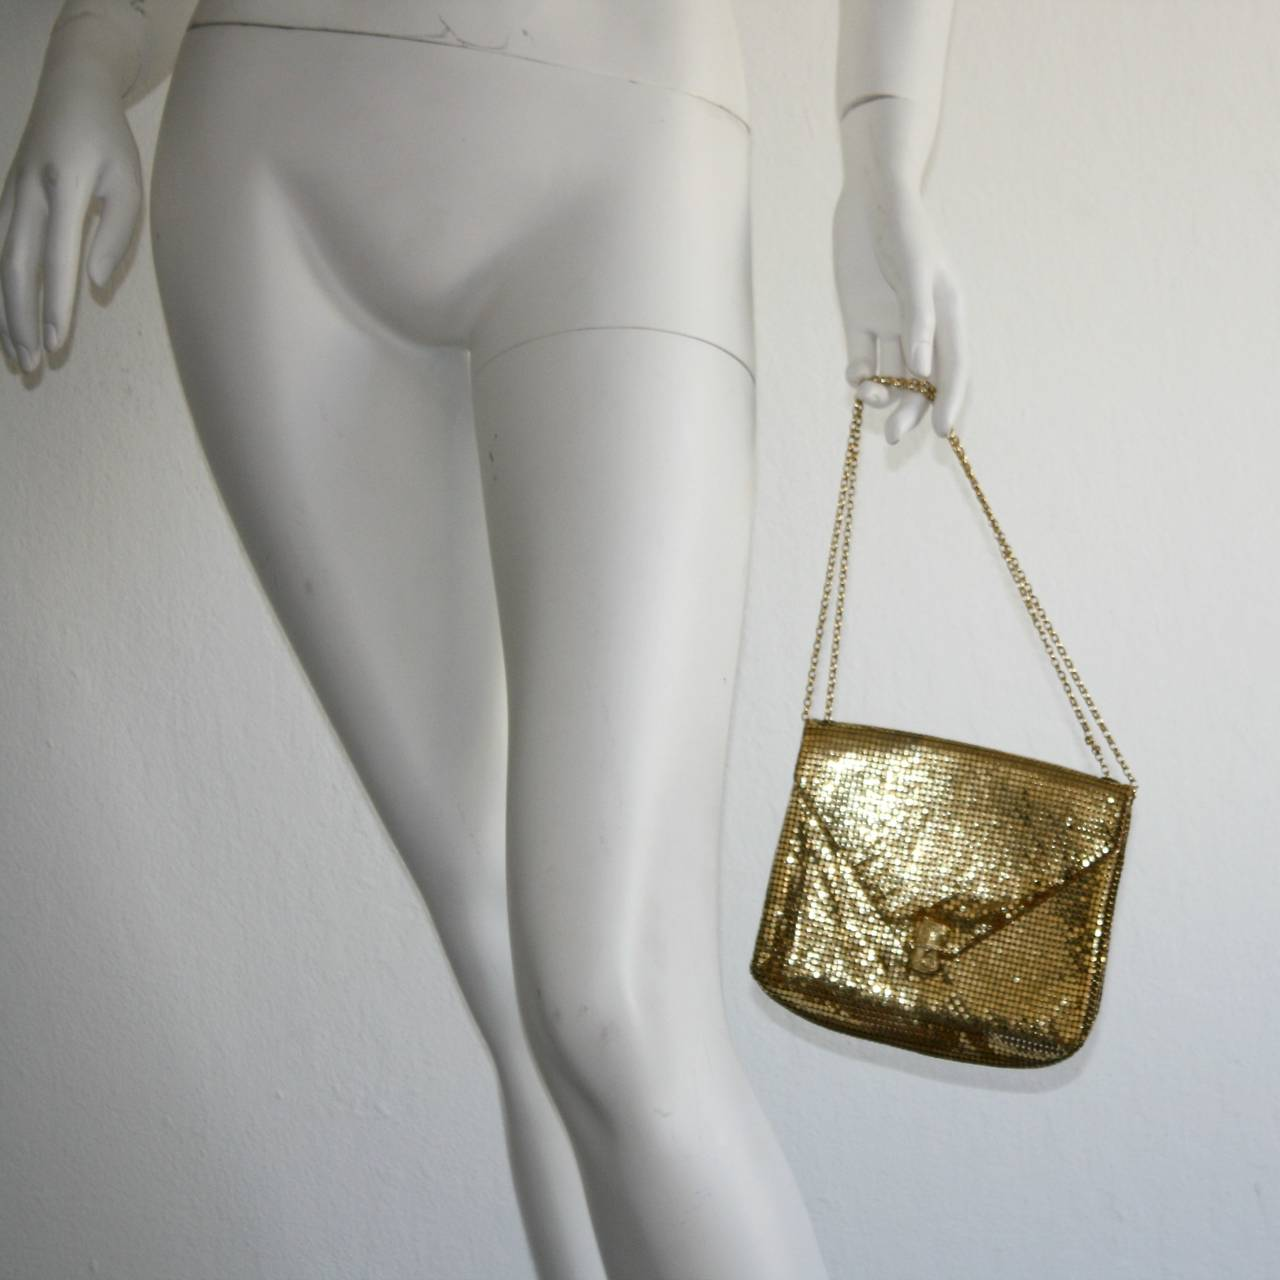 1960s Vintage Whiting and Davis Gold Metal Mesh Handbag or Clutch 4